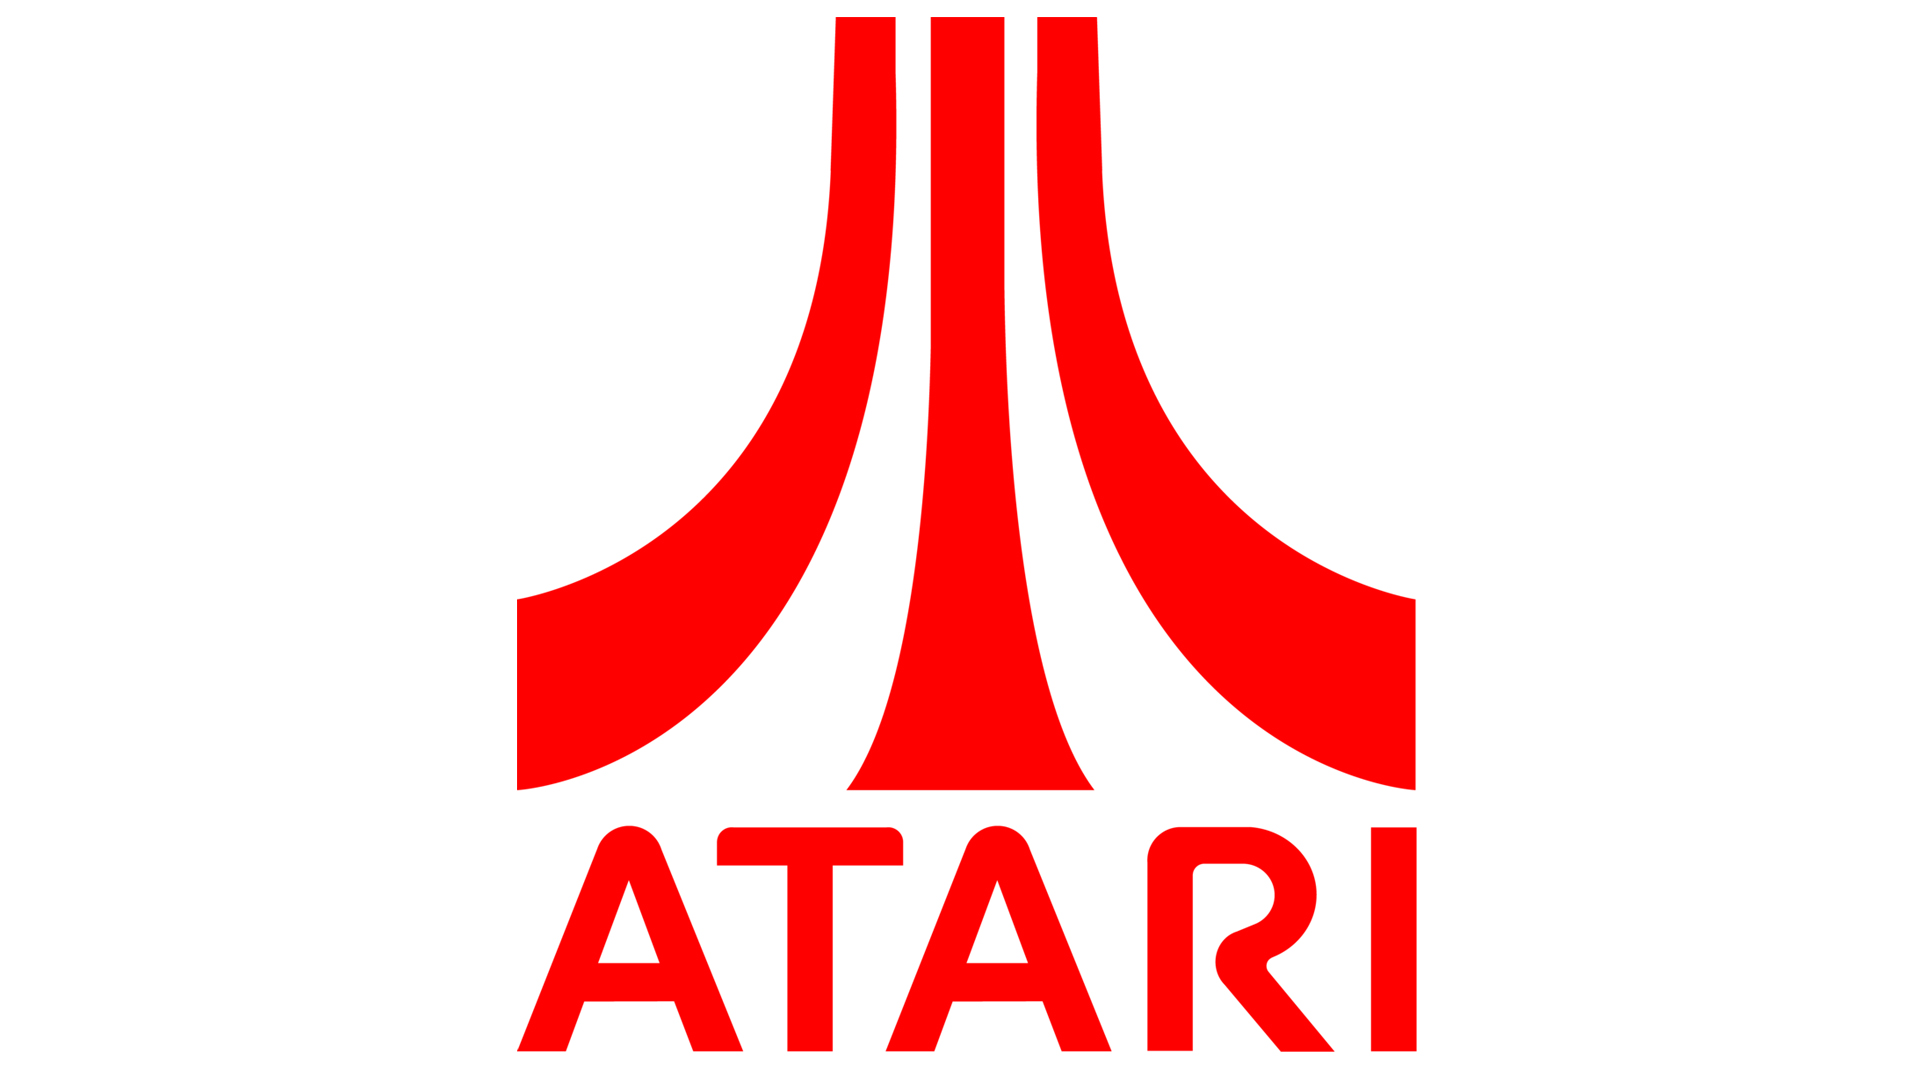 Atari Png (101+ images in Collection) Page 2.